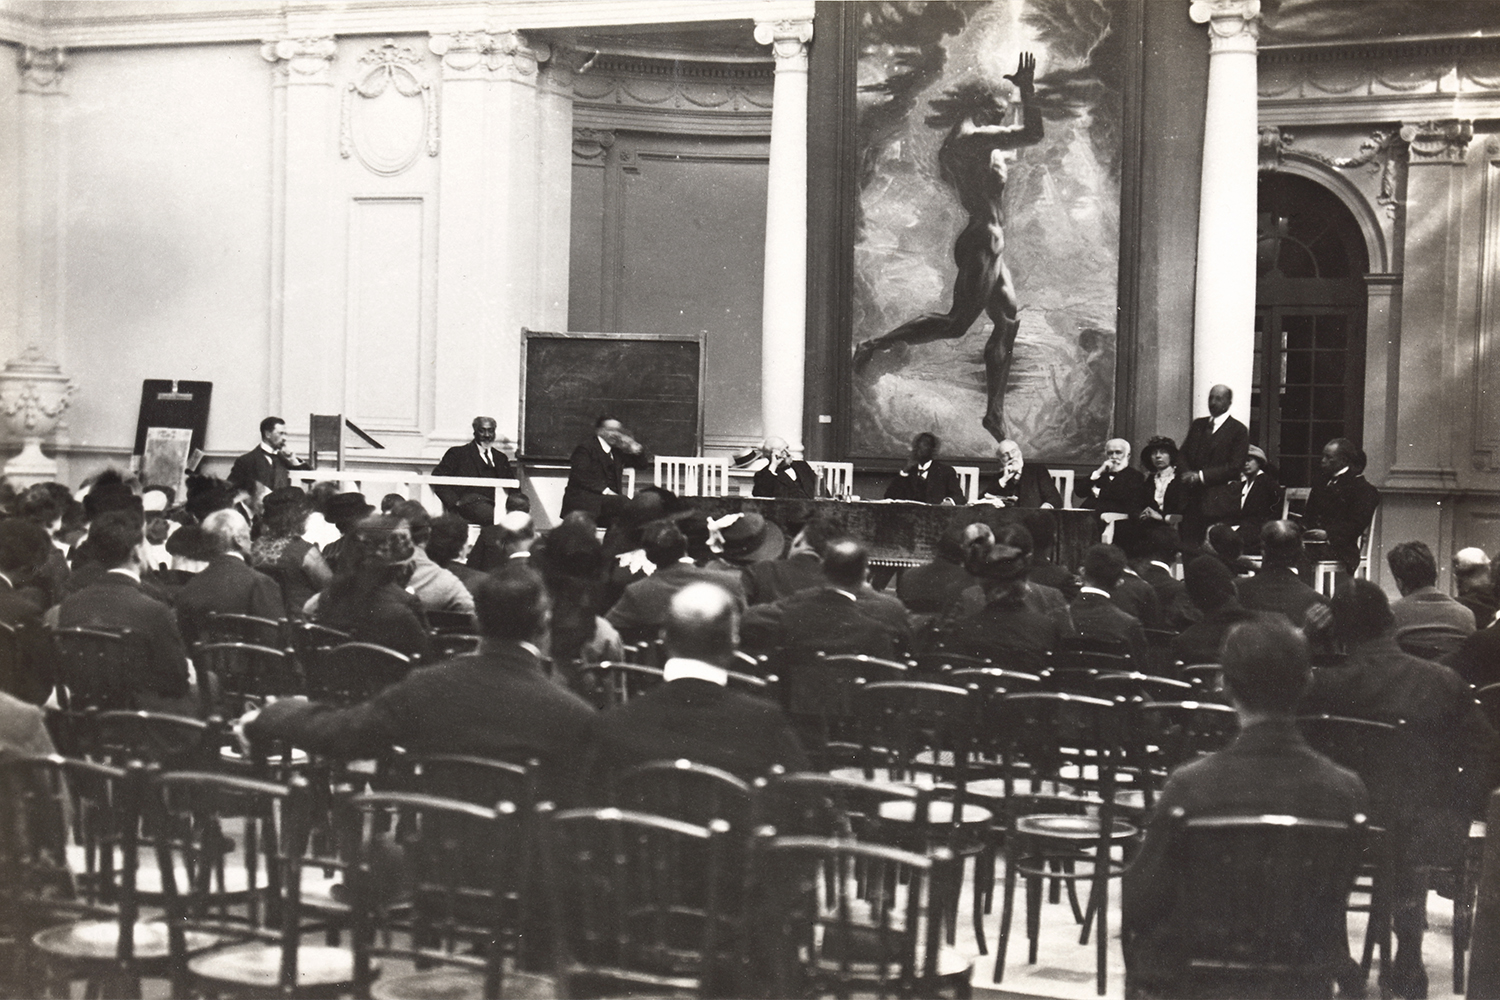 The Second Pan-African Congress, the Palais Mondial, September 1921.